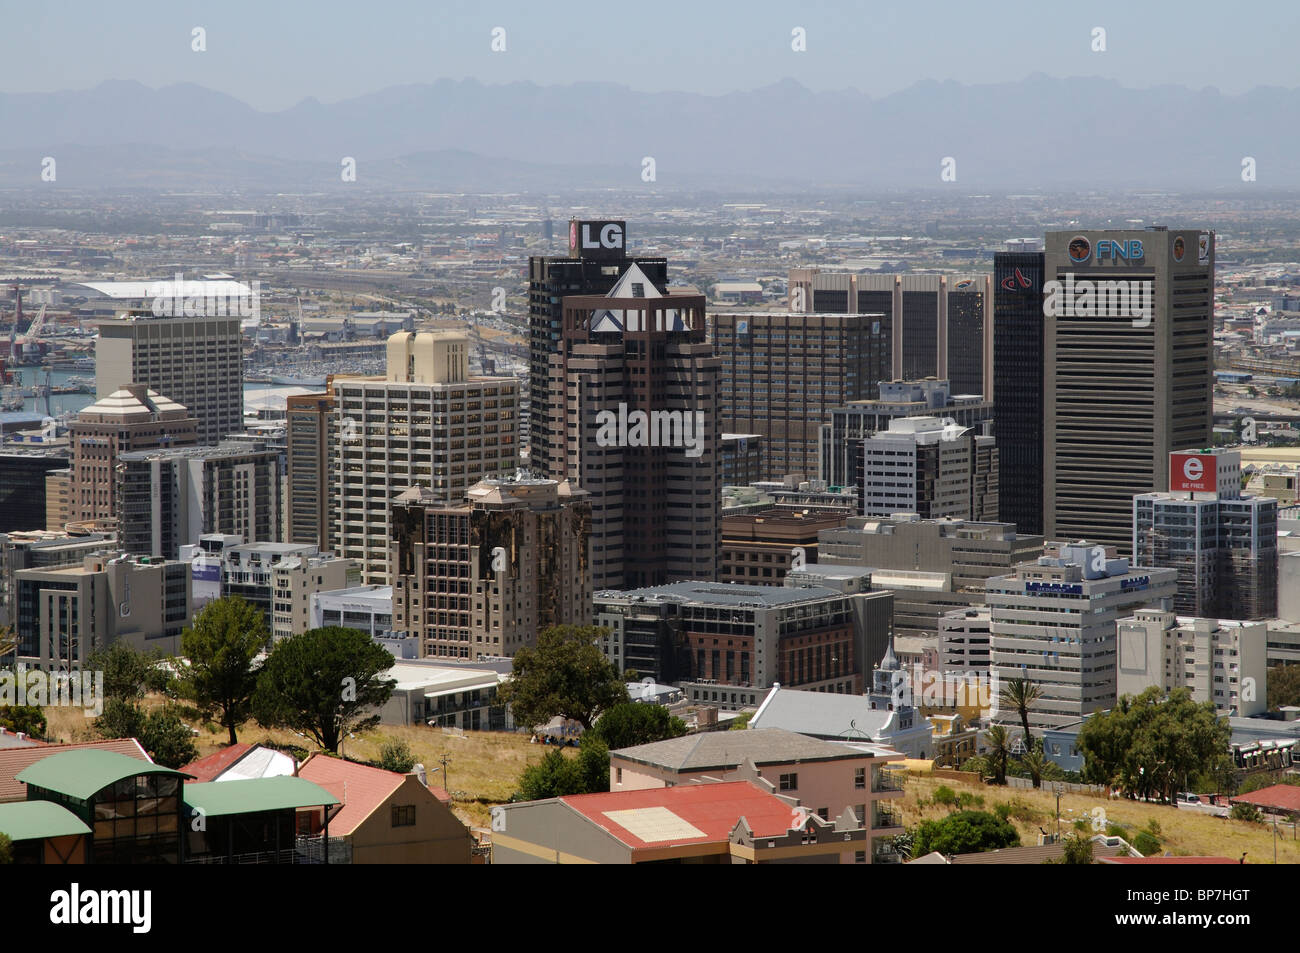 Cape Town city centre business buildings including the highrise LG premises and the FNB bank building Stock Photo